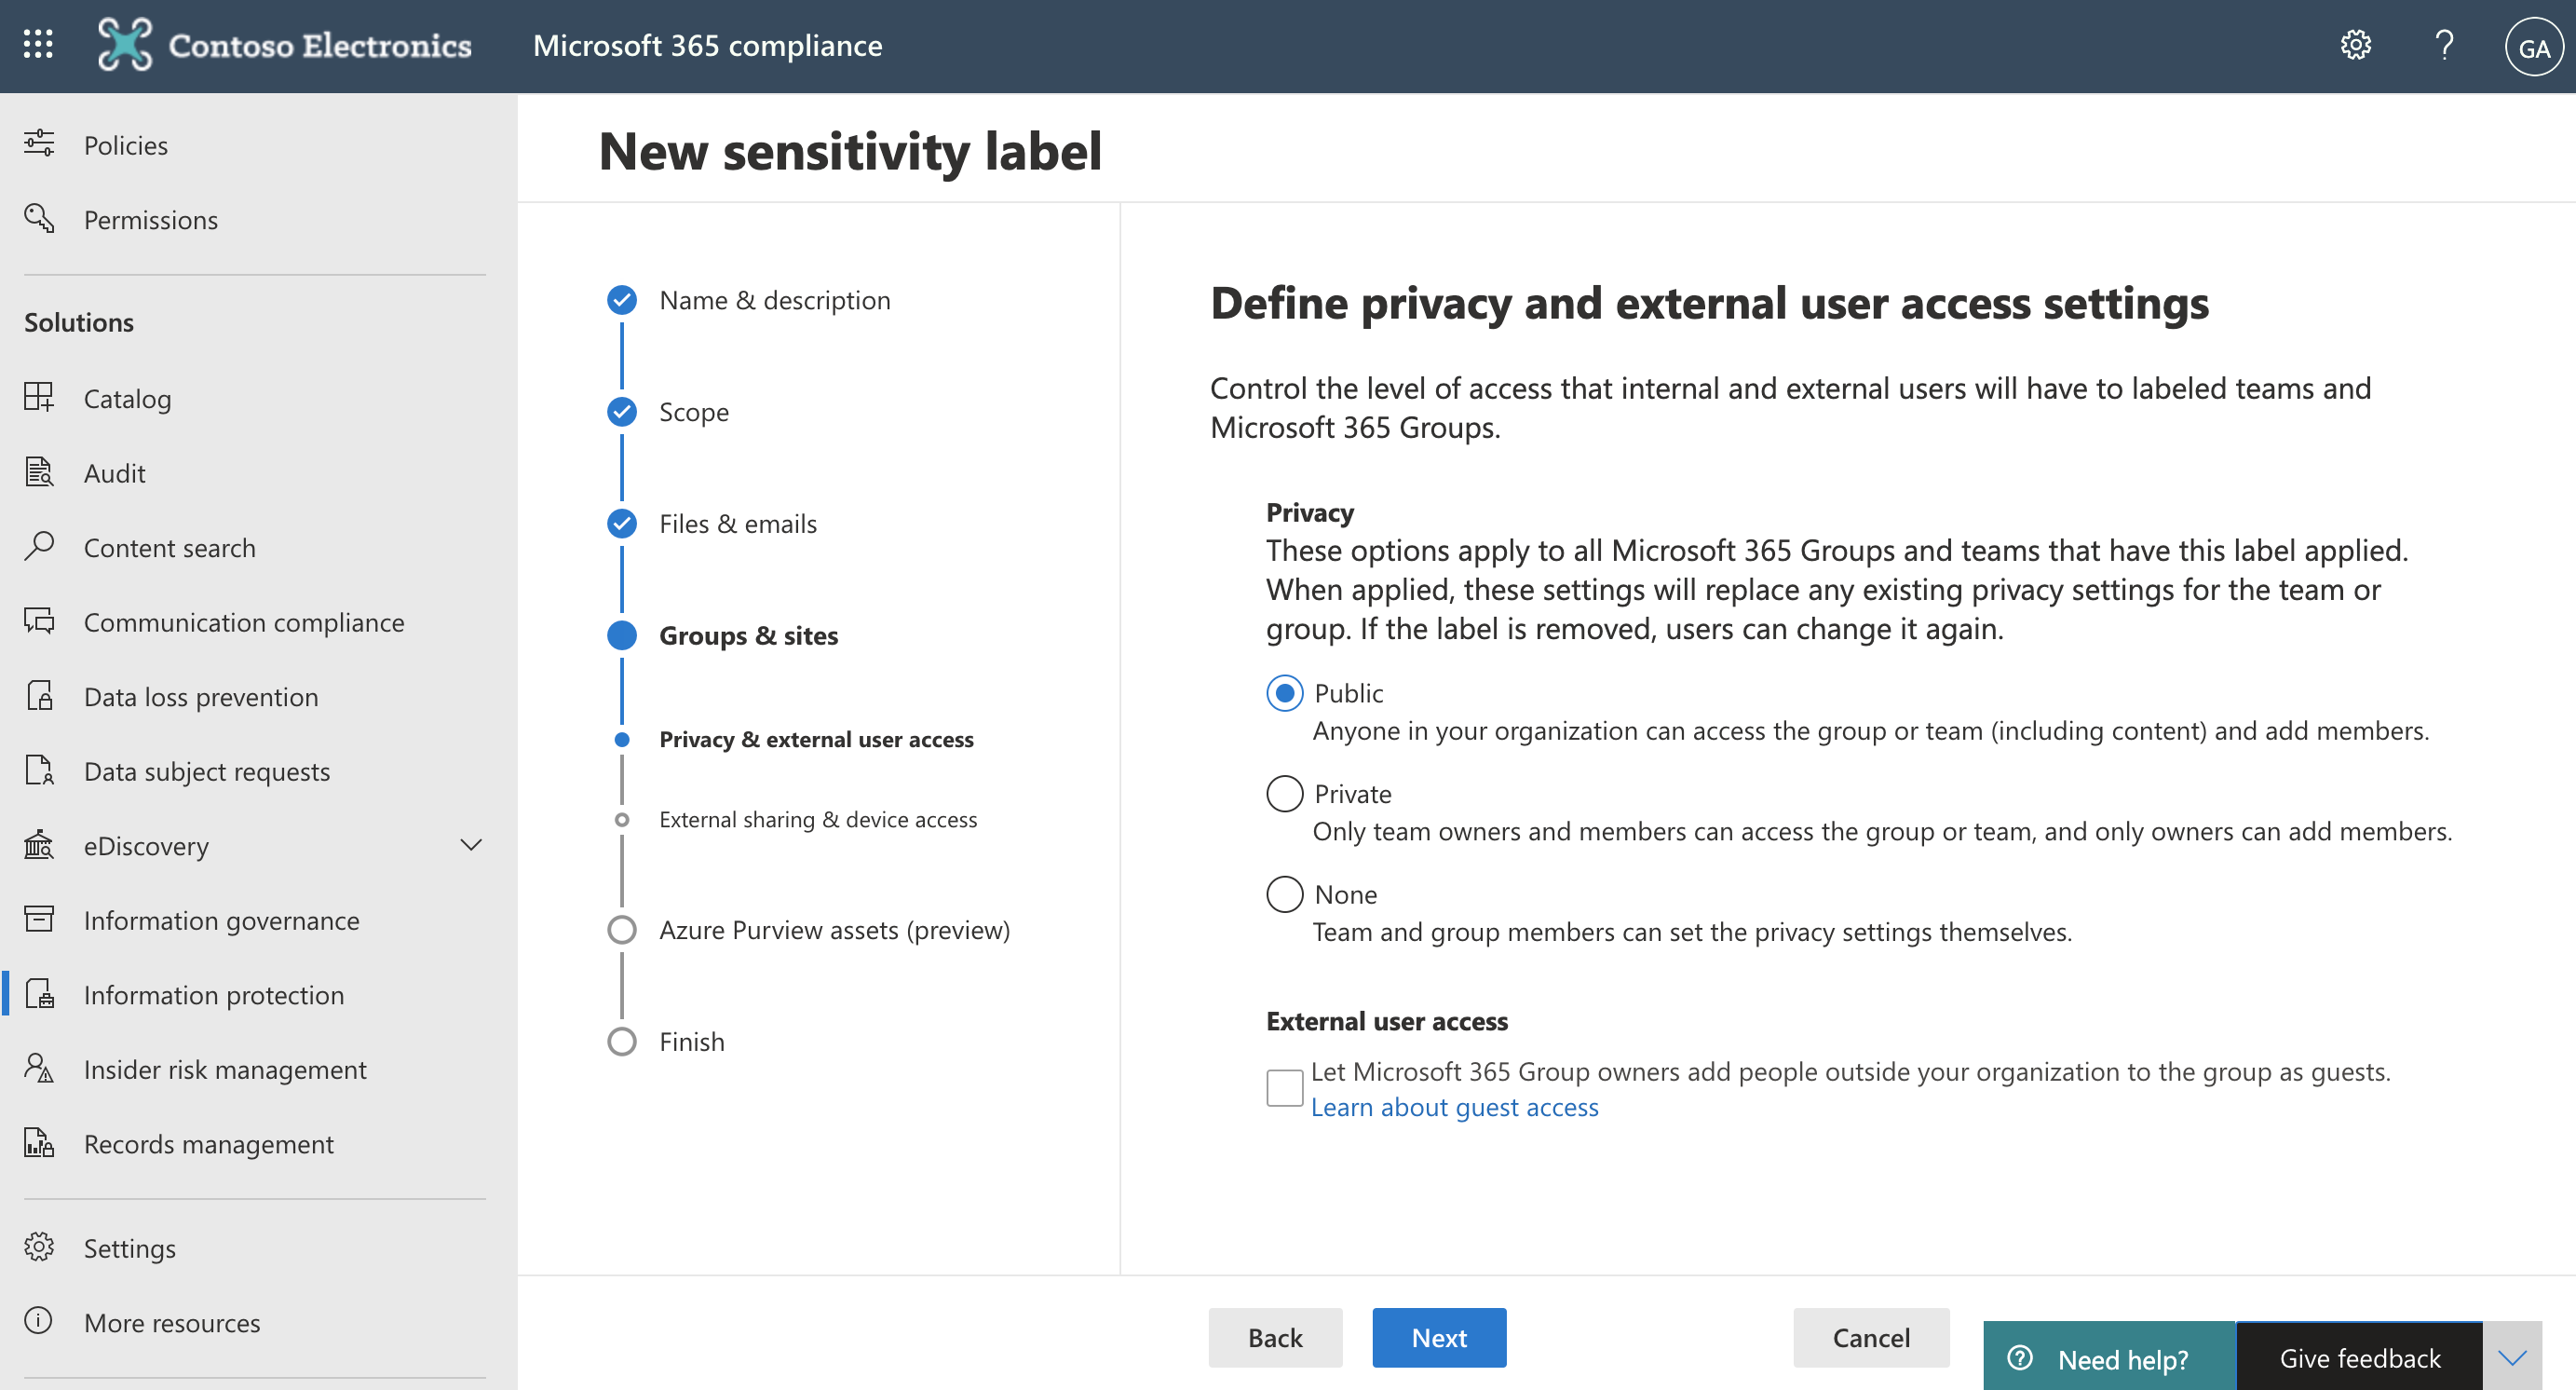 Screenshot of Define privacy and external user access settings in tthe Microsoft 365 compliance center.